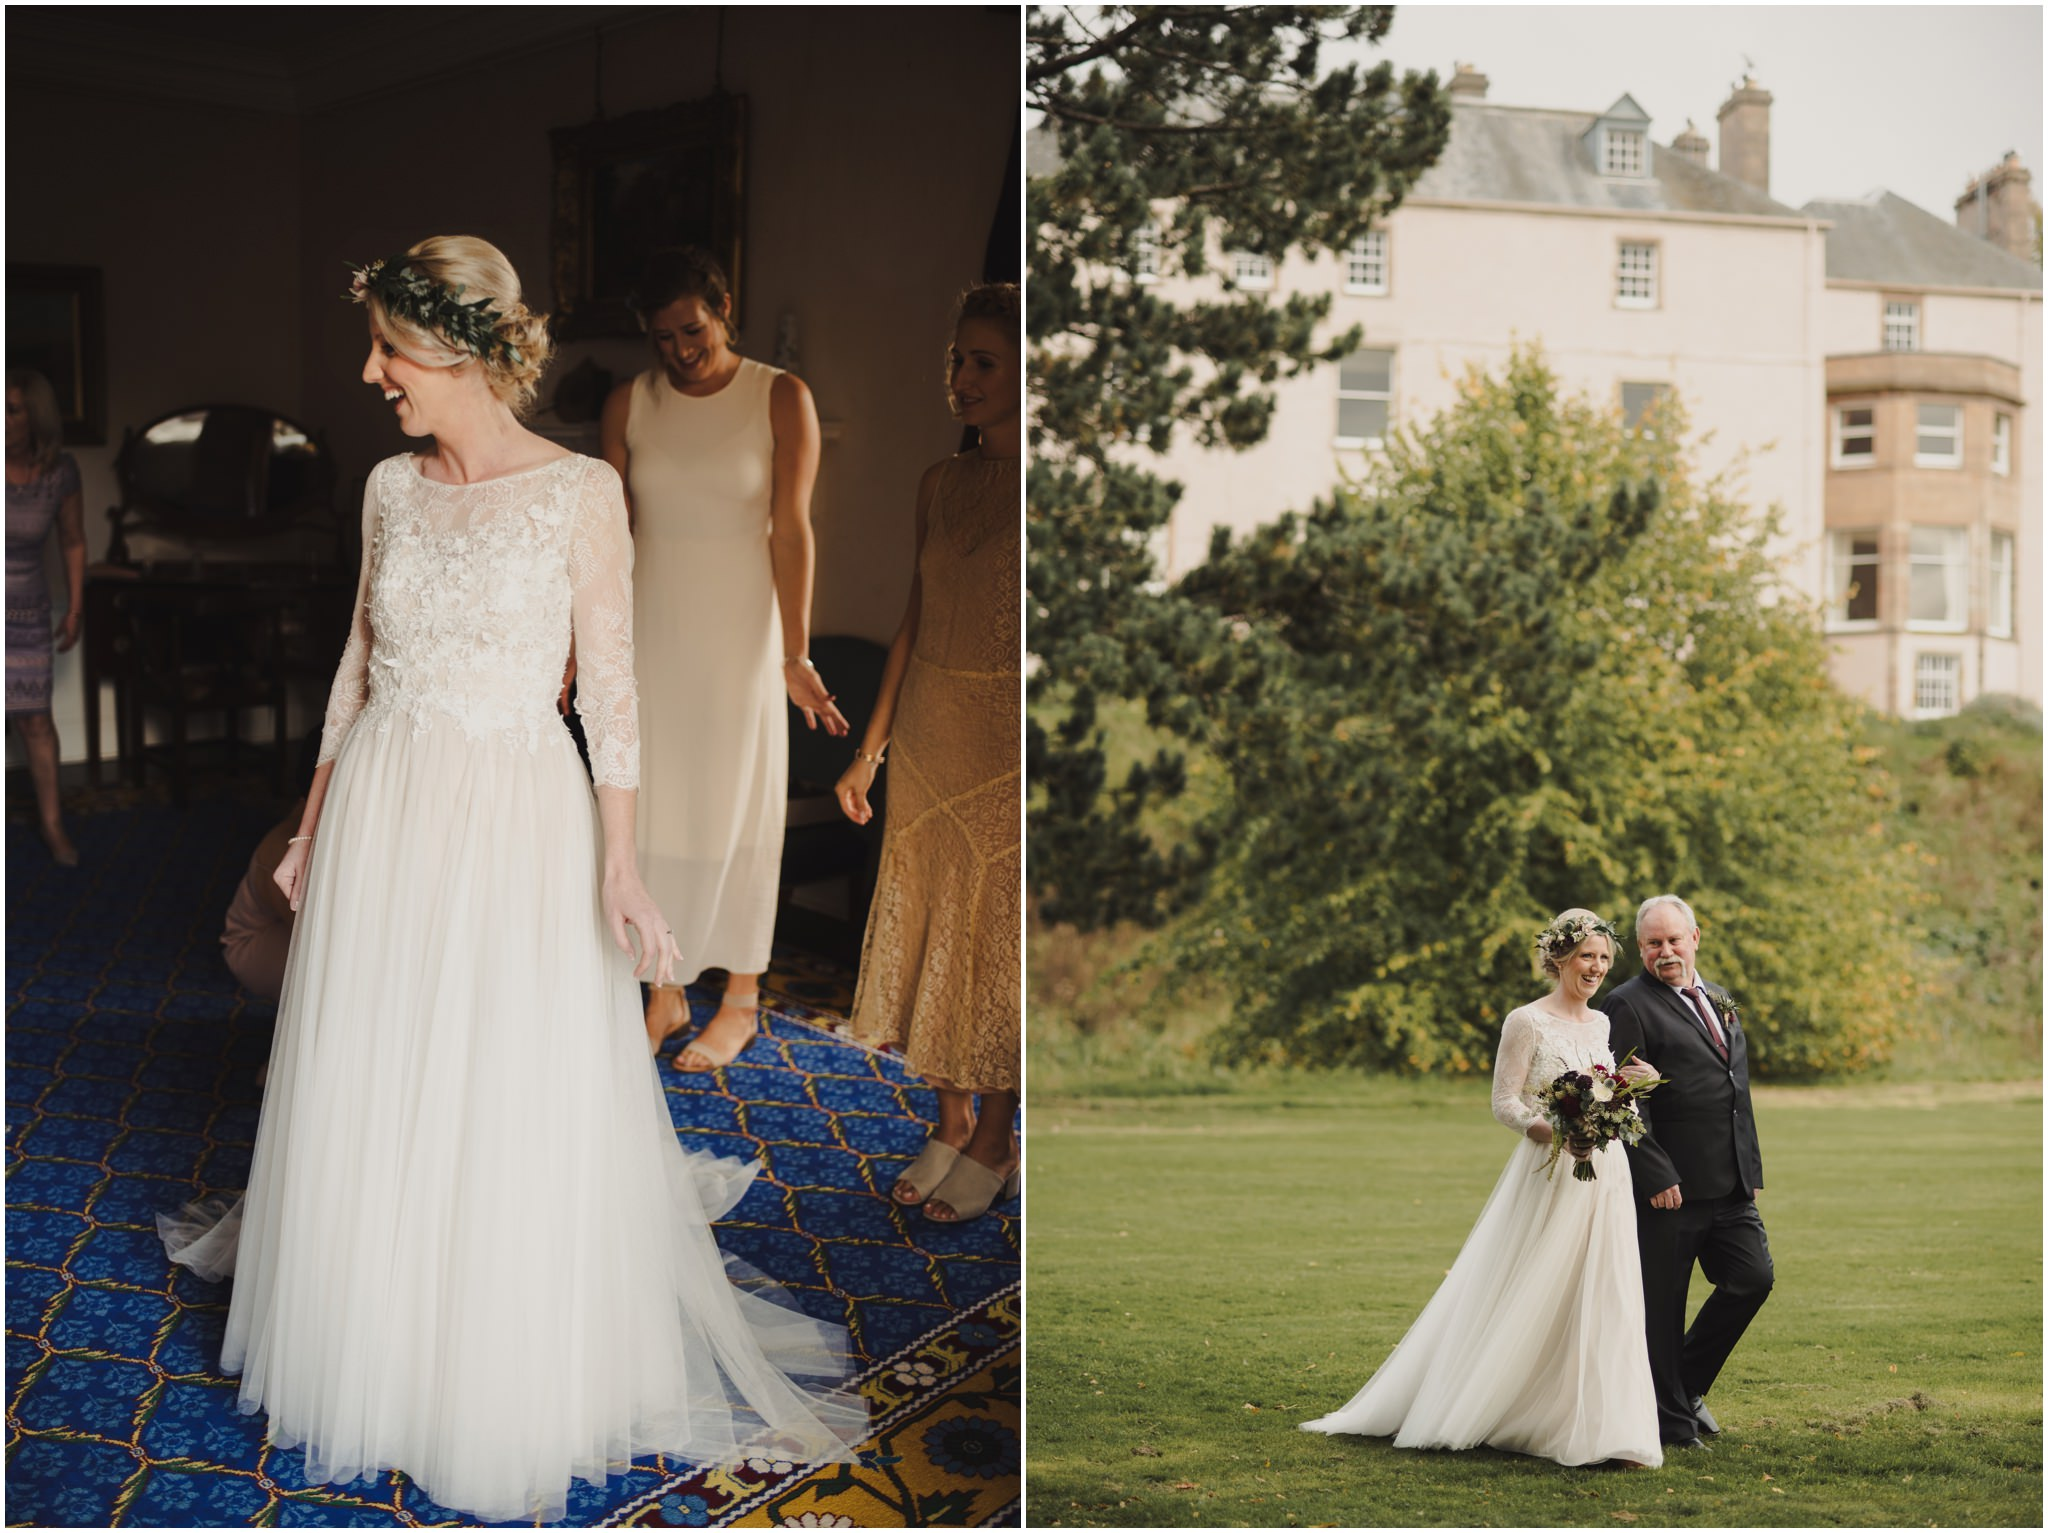 Autumn wedding at Colstoun House